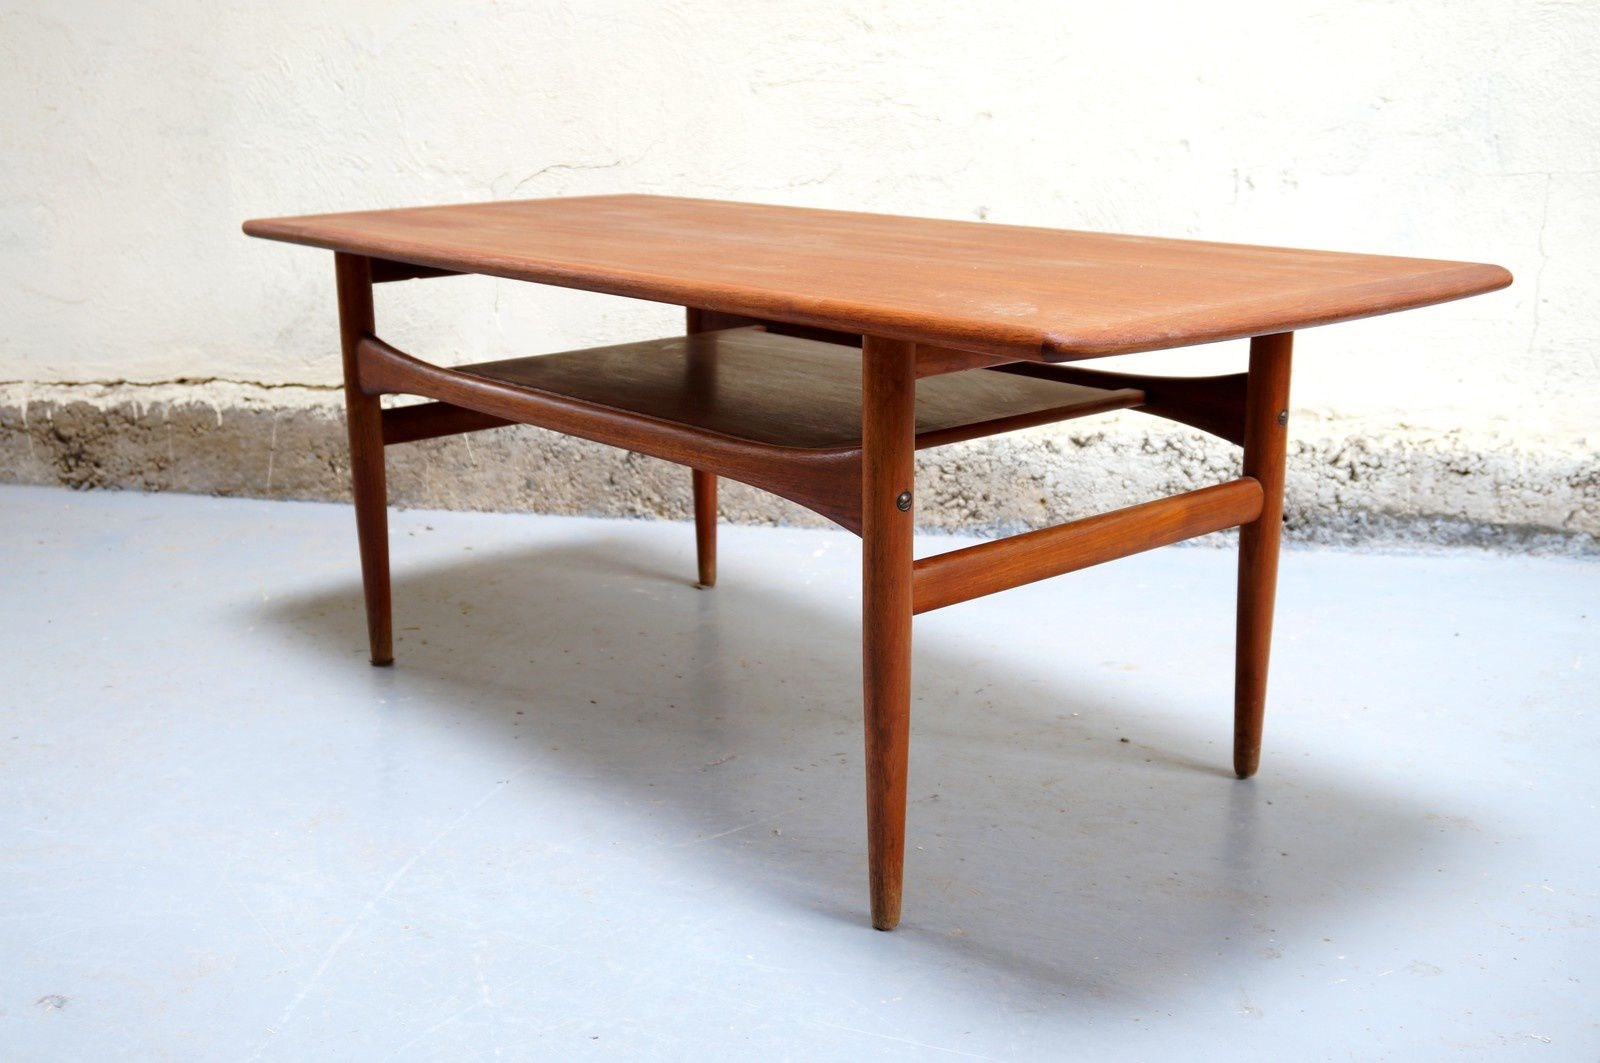 Table basse scandinave arrebo mobler danois vintage danish for Table scandinave